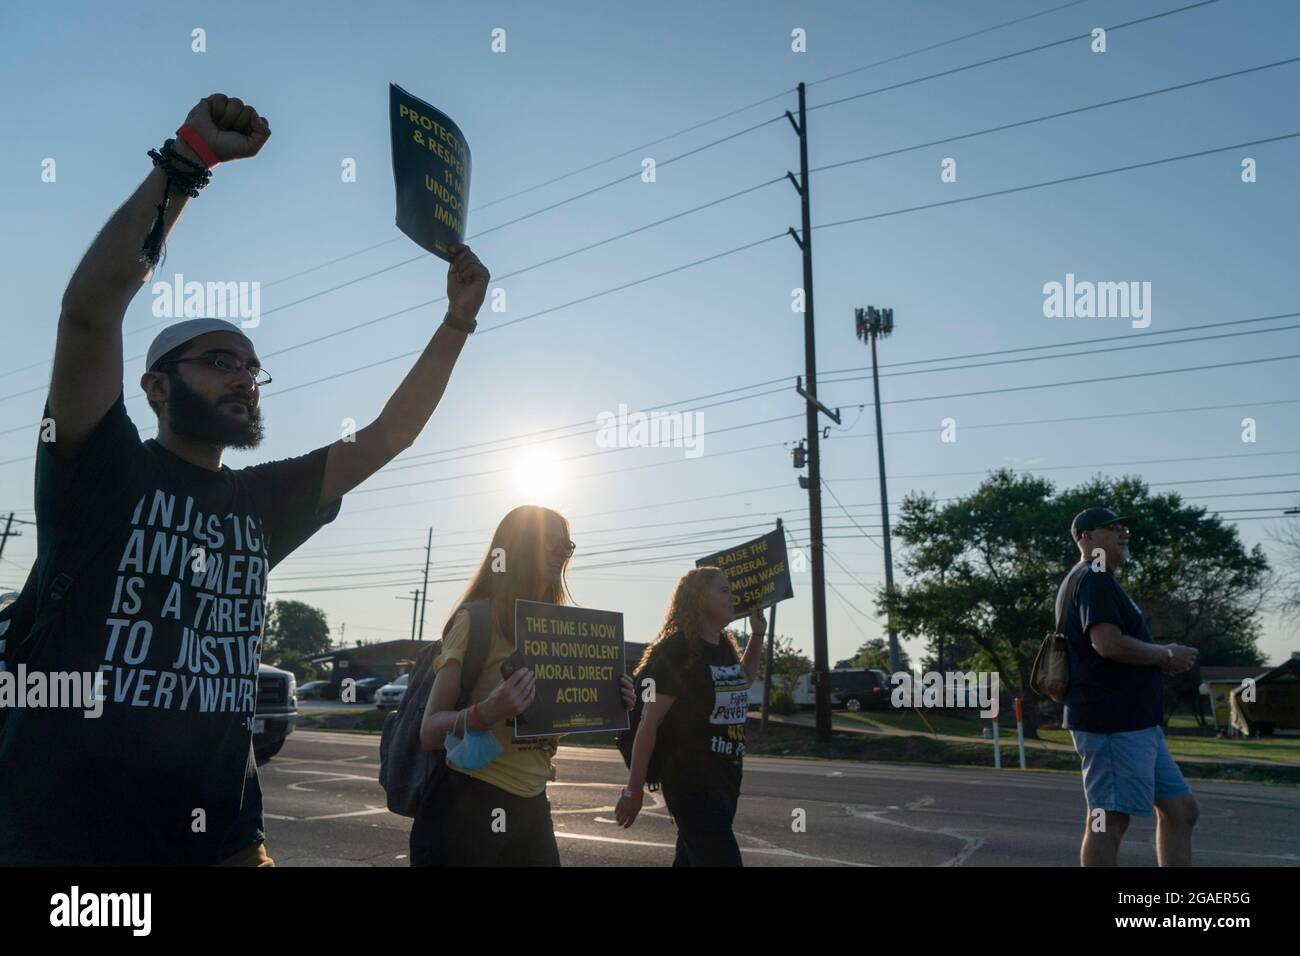 Austin, Texas USA, July 30, 2021: Voting rights activists march along an interstate highway frontage road toward the Texas Capitol from north Austin on the third day of a 30-mile journey protesting Republican efforts to suppress votes nationwide and in Texas. Shifts of marchers trade off in an effort to combat oppressive Texas heat. Credit: Bob Daemmrich/Alamy Live News Stock Photo